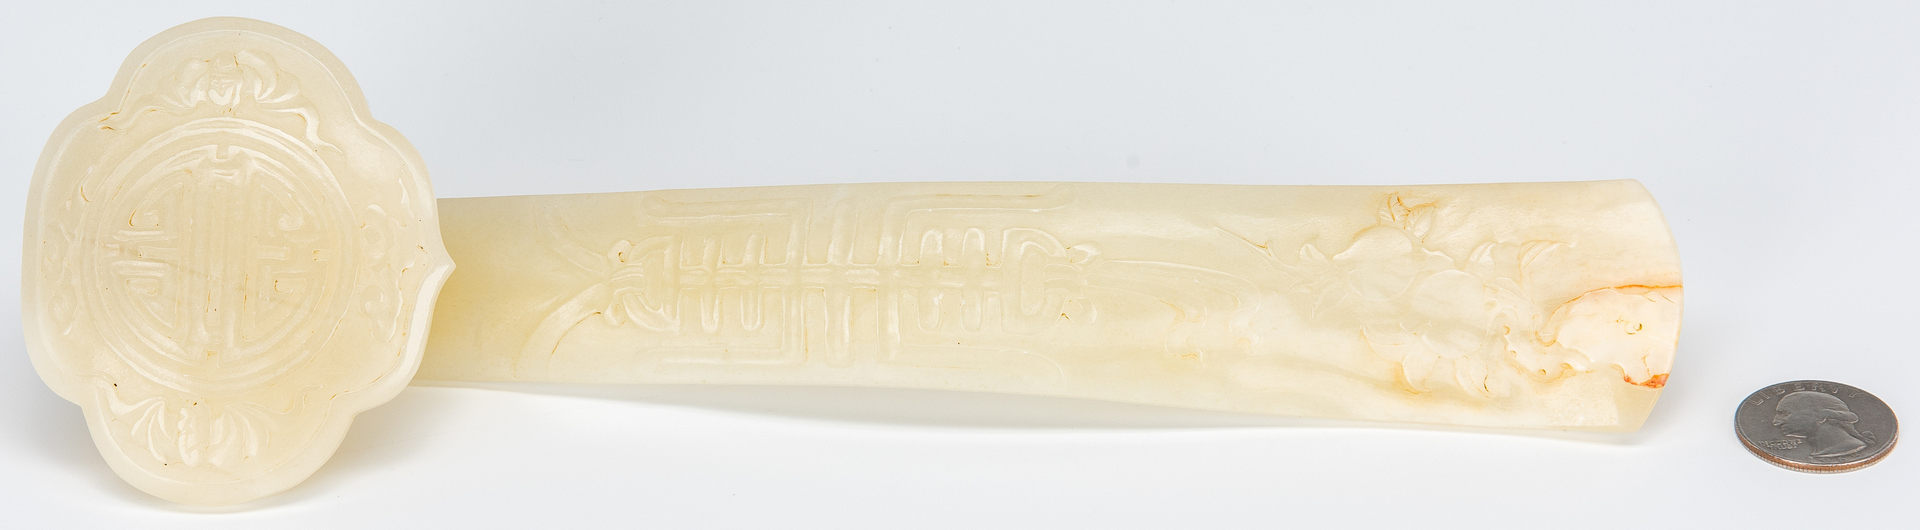 Lot 15: Chinese White Jade Ruyi Scepter